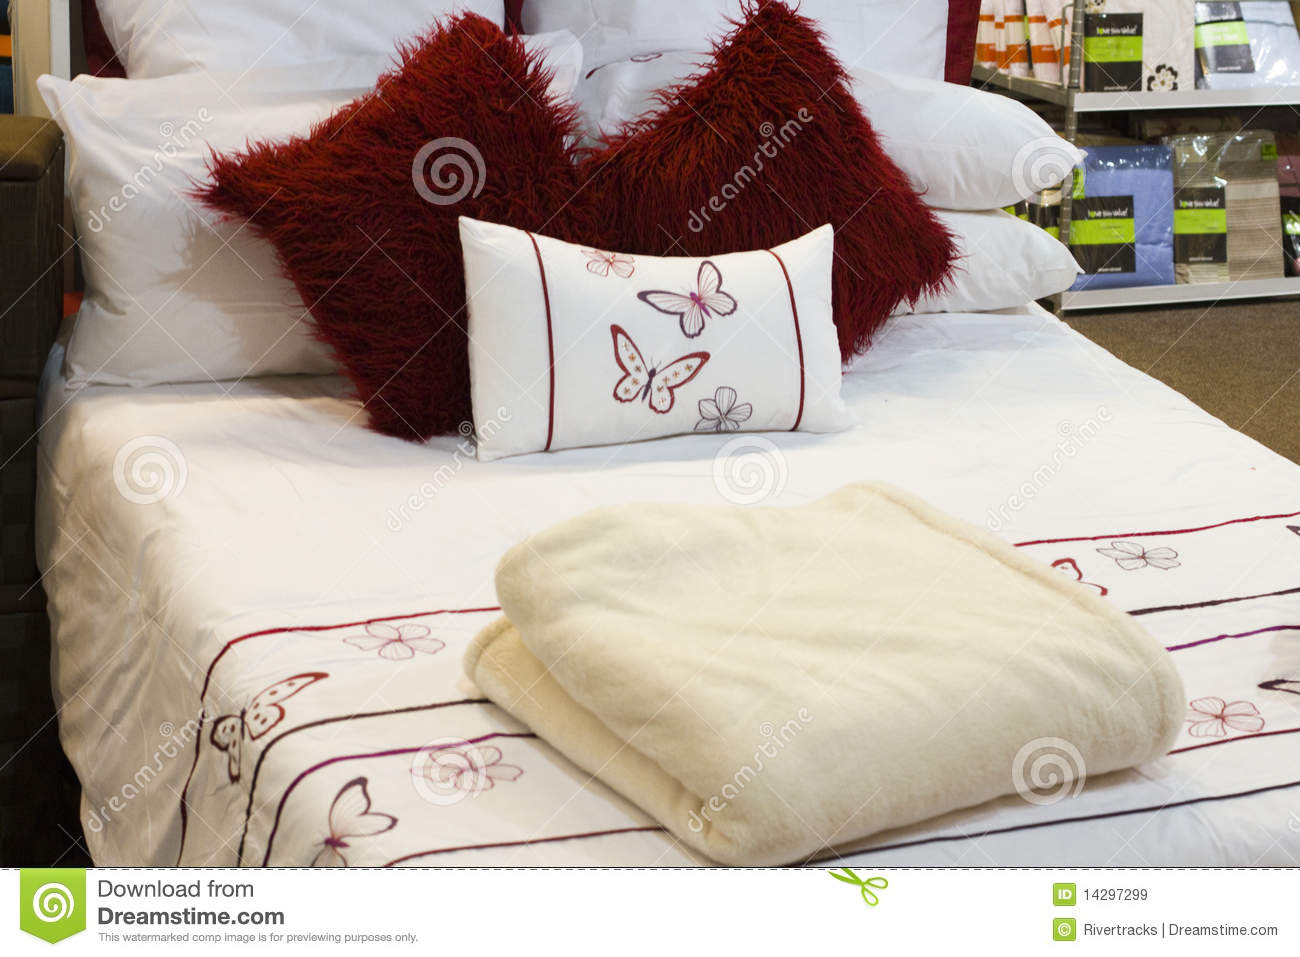 Bed with linen in a house accessory retail store